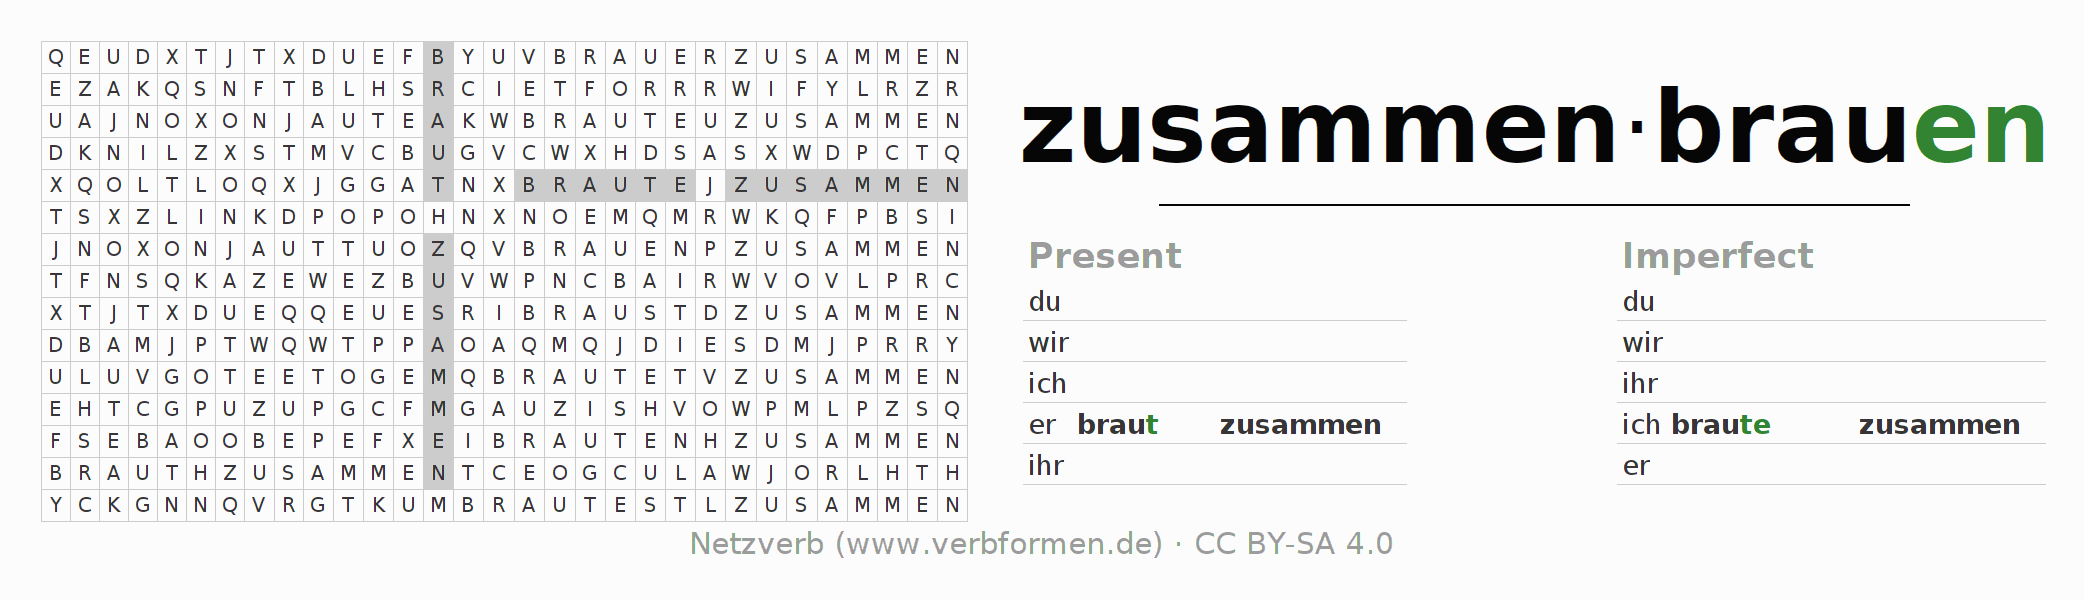 Word search puzzle for the conjugation of the verb zusammenbrauen